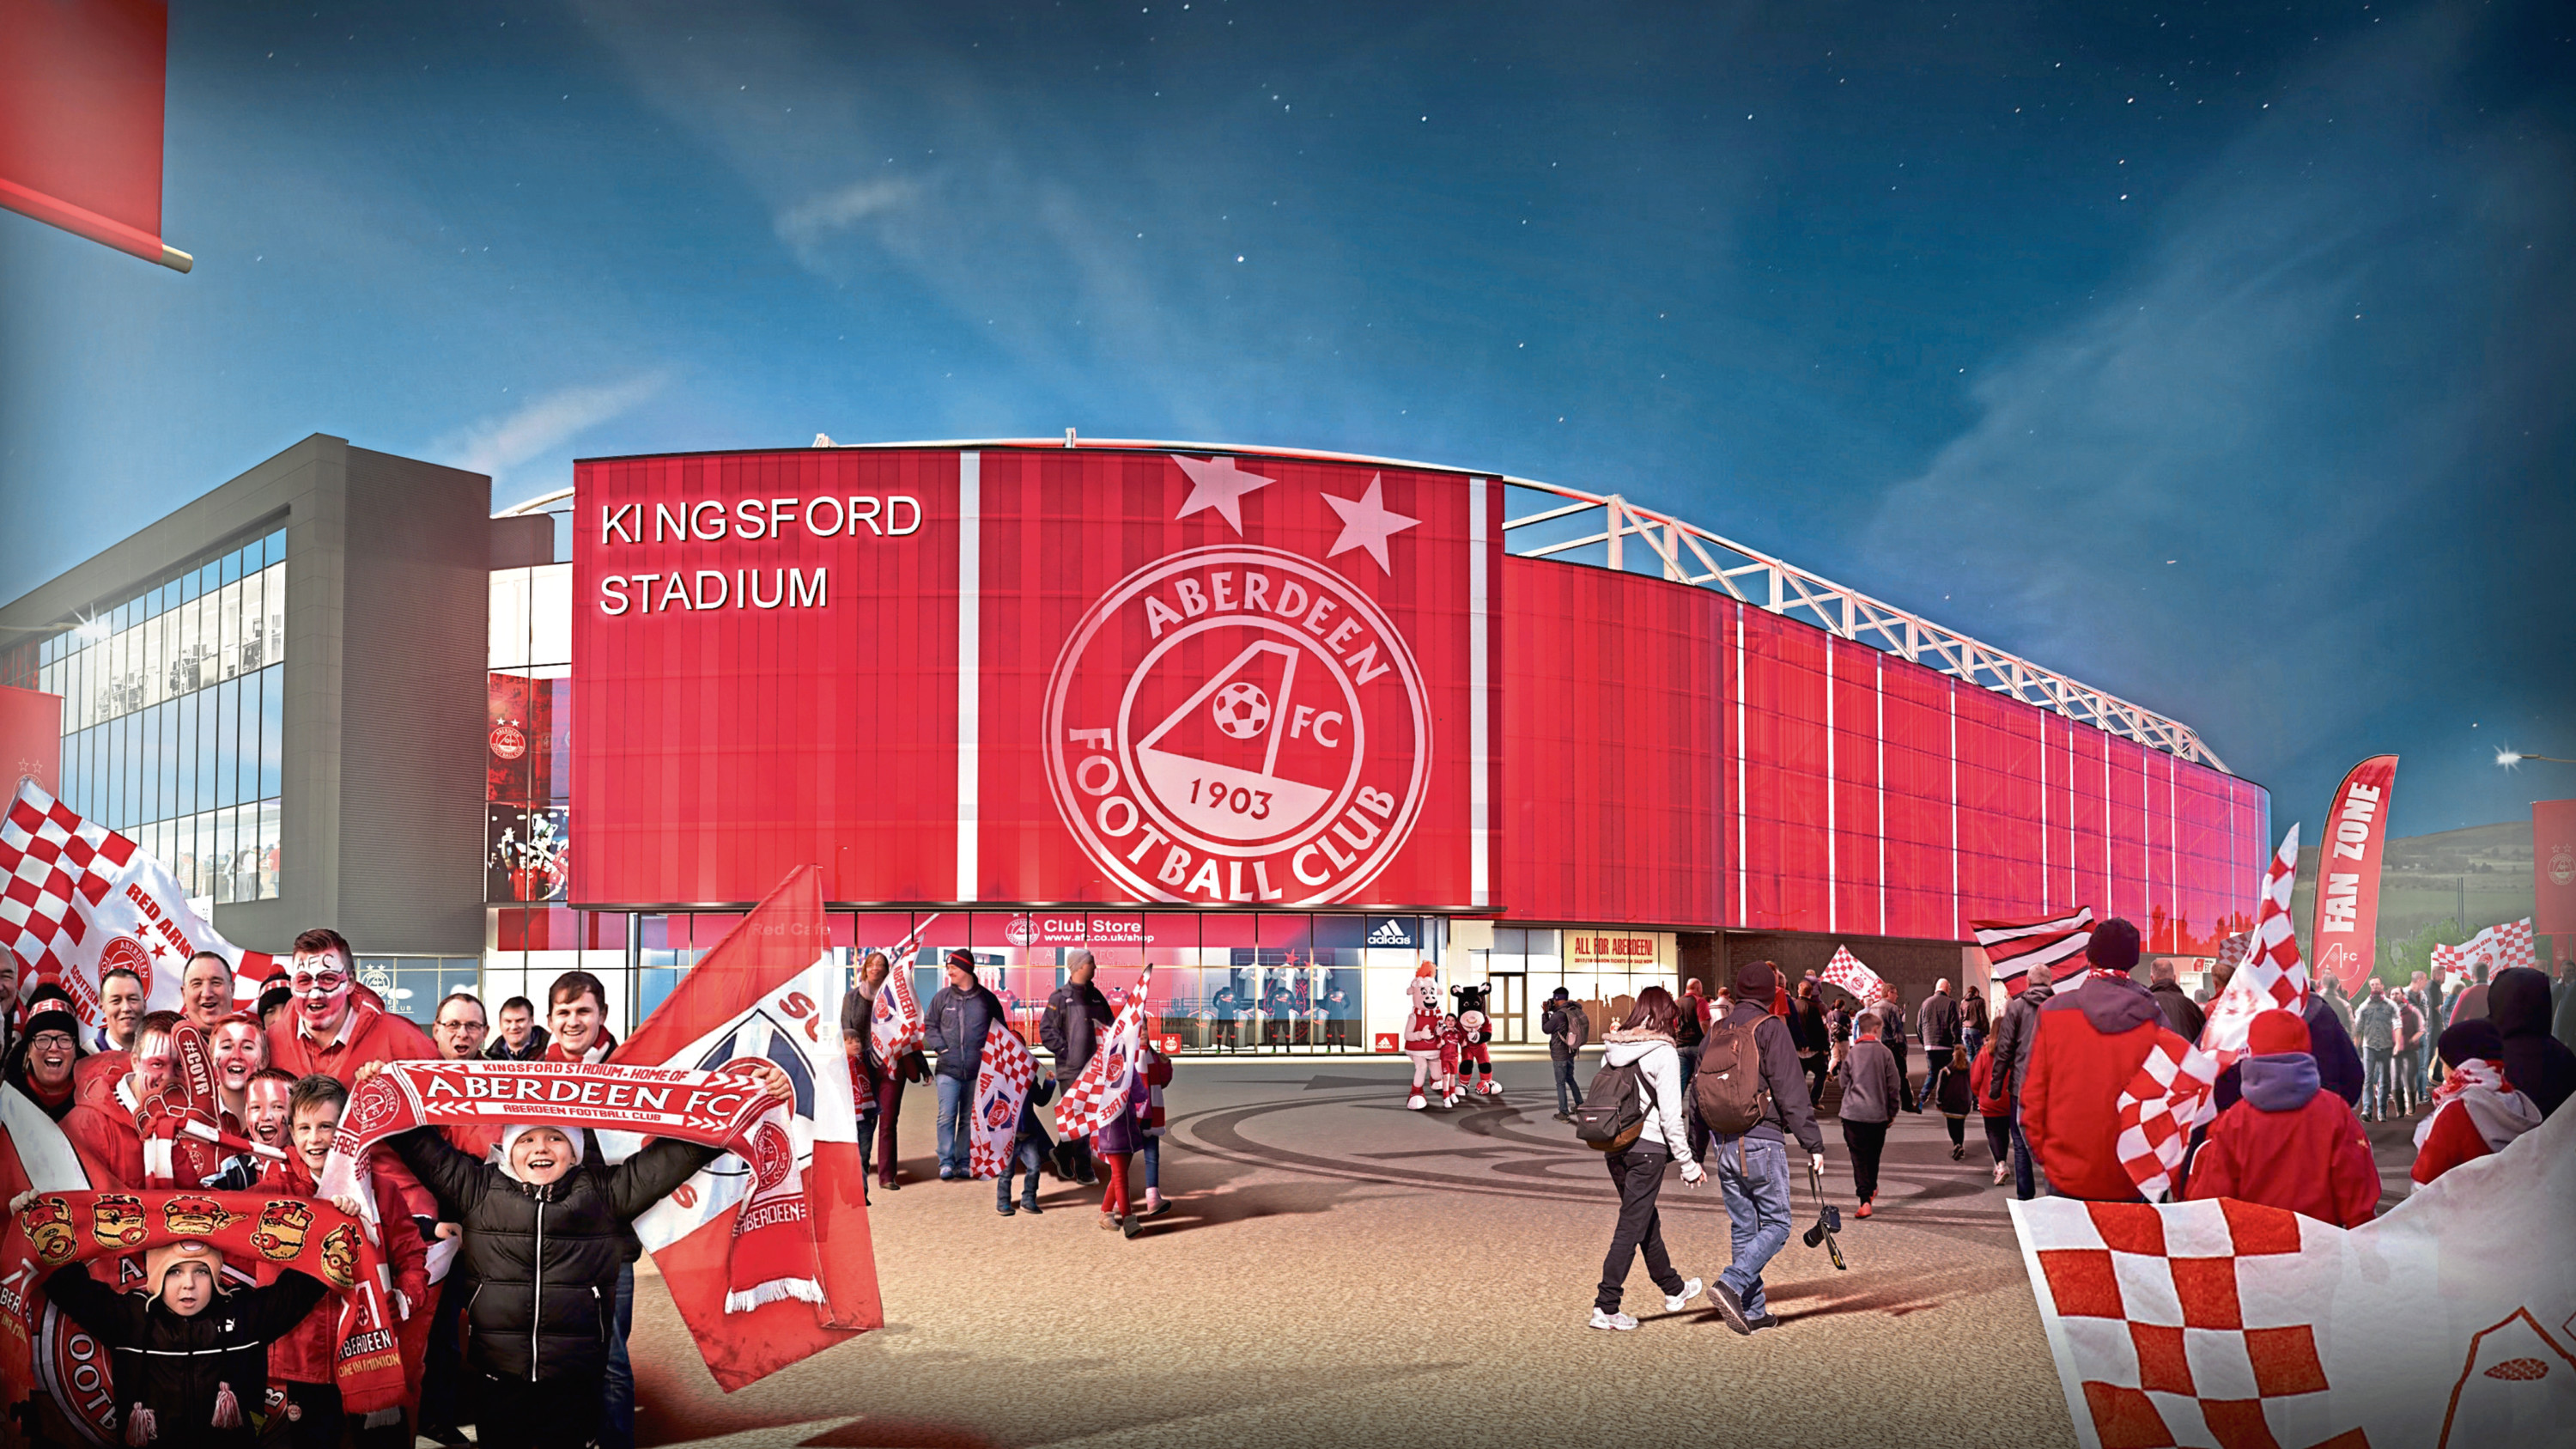 Image of the new Kingsford Stadium which could be the home of Aberdeen FC   Dons stadium Artist impression